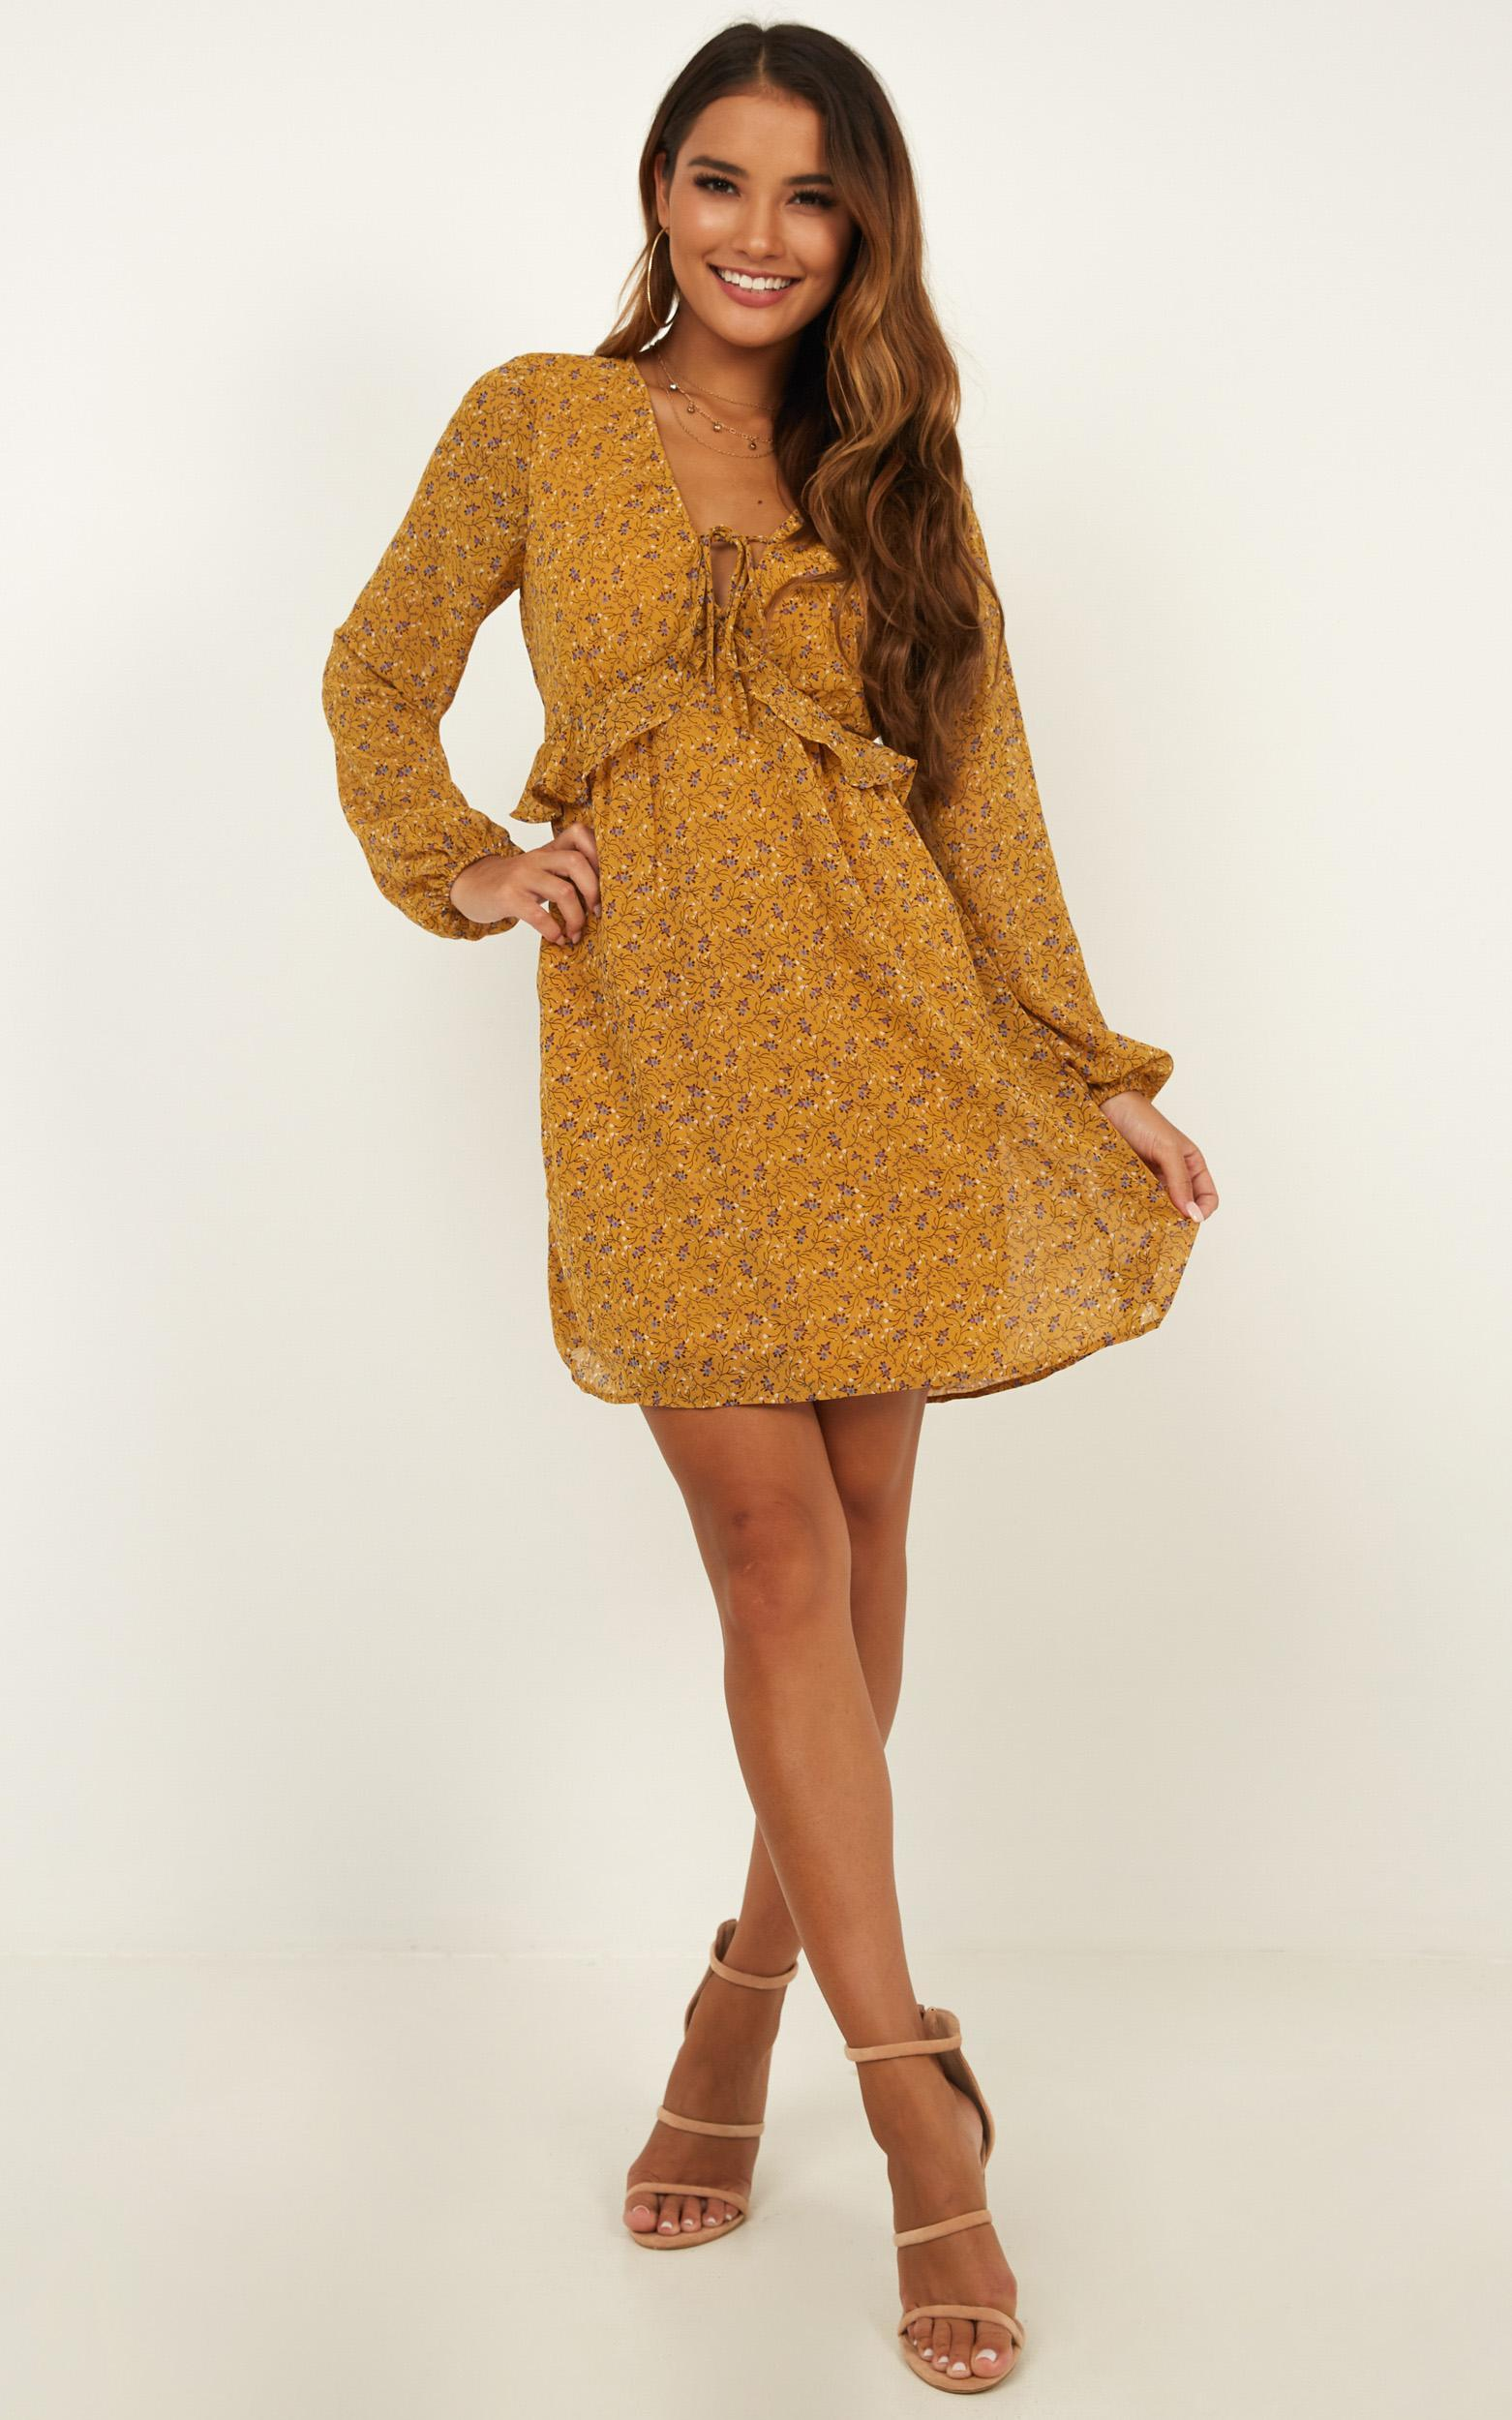 Channeled Energy dress in mustard floral - 12 (L), Mustard, hi-res image number null